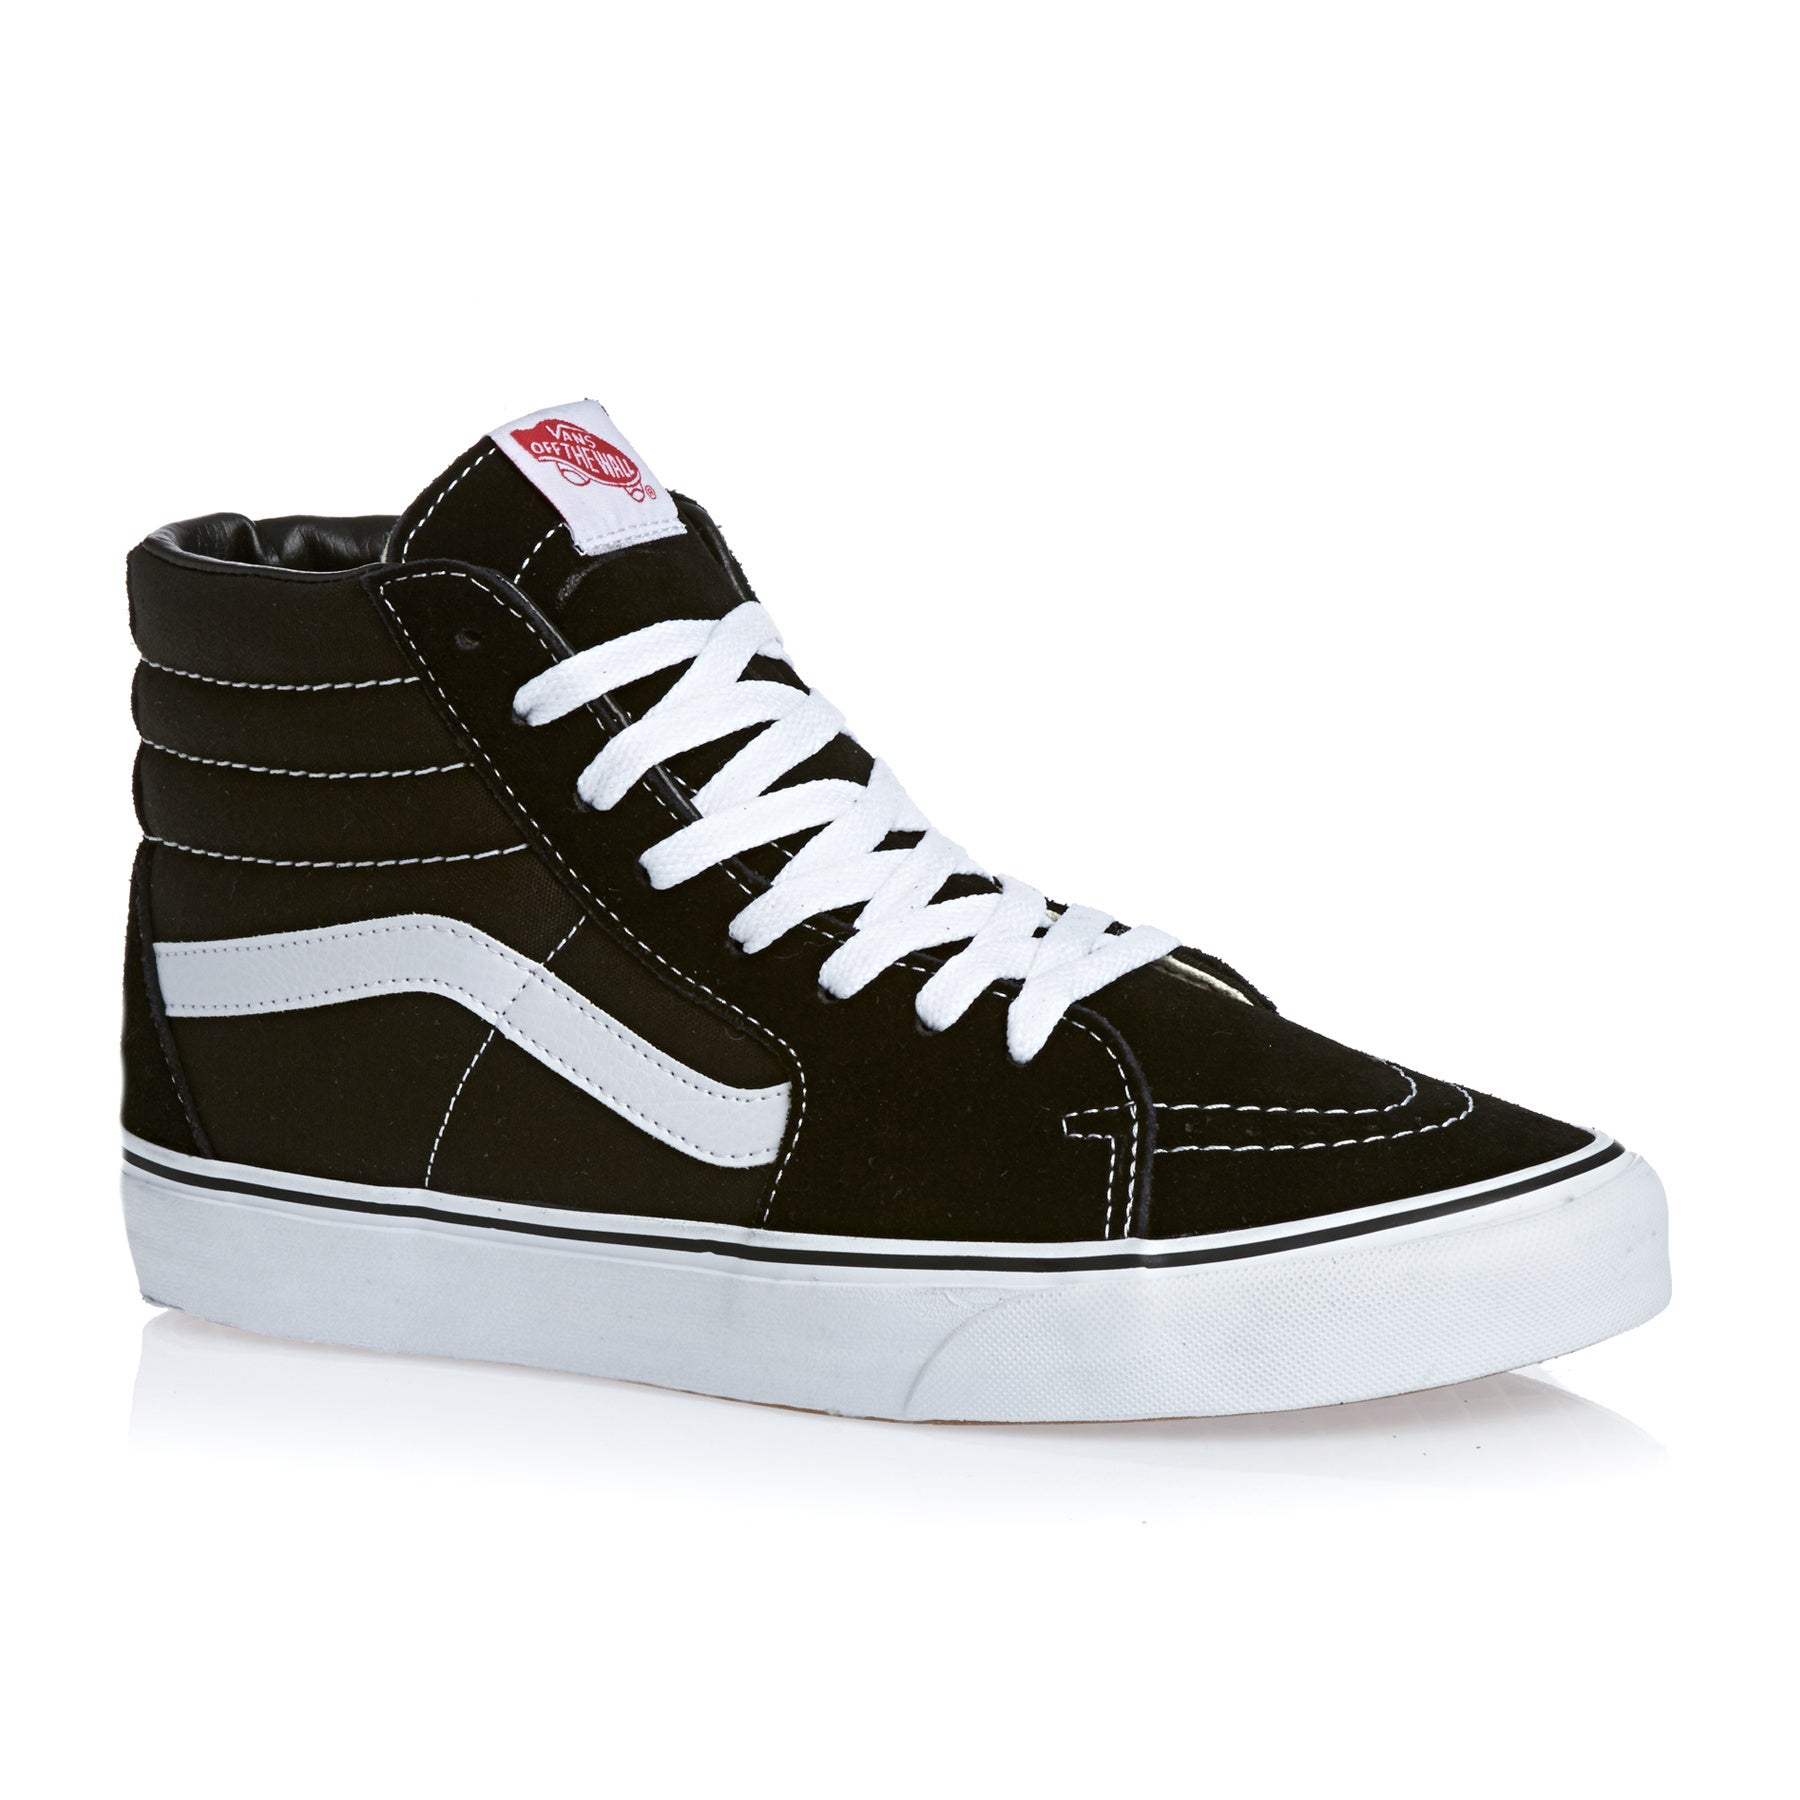 a3c376db9ef buy paul rodriguez nike shoes for girls on black